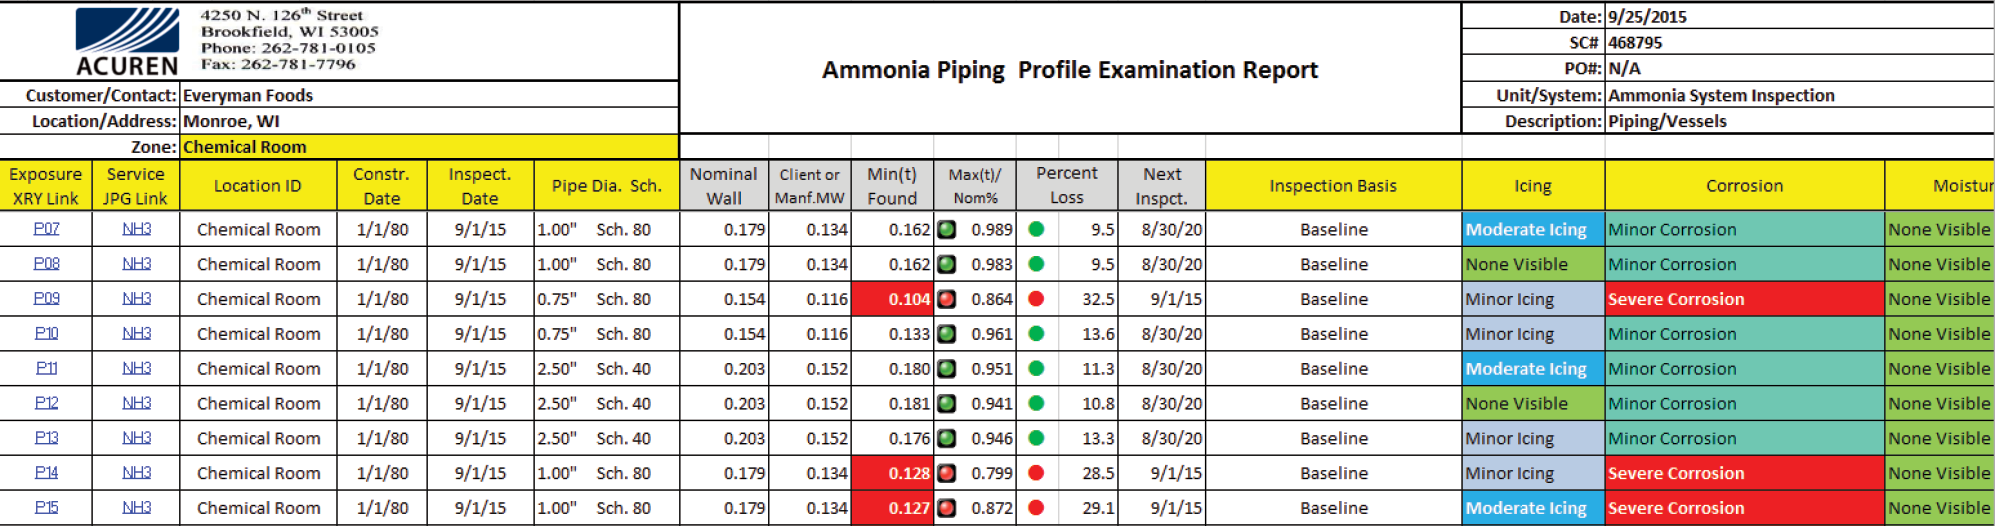 Acuren Ammonia Piping Profile Examination Report